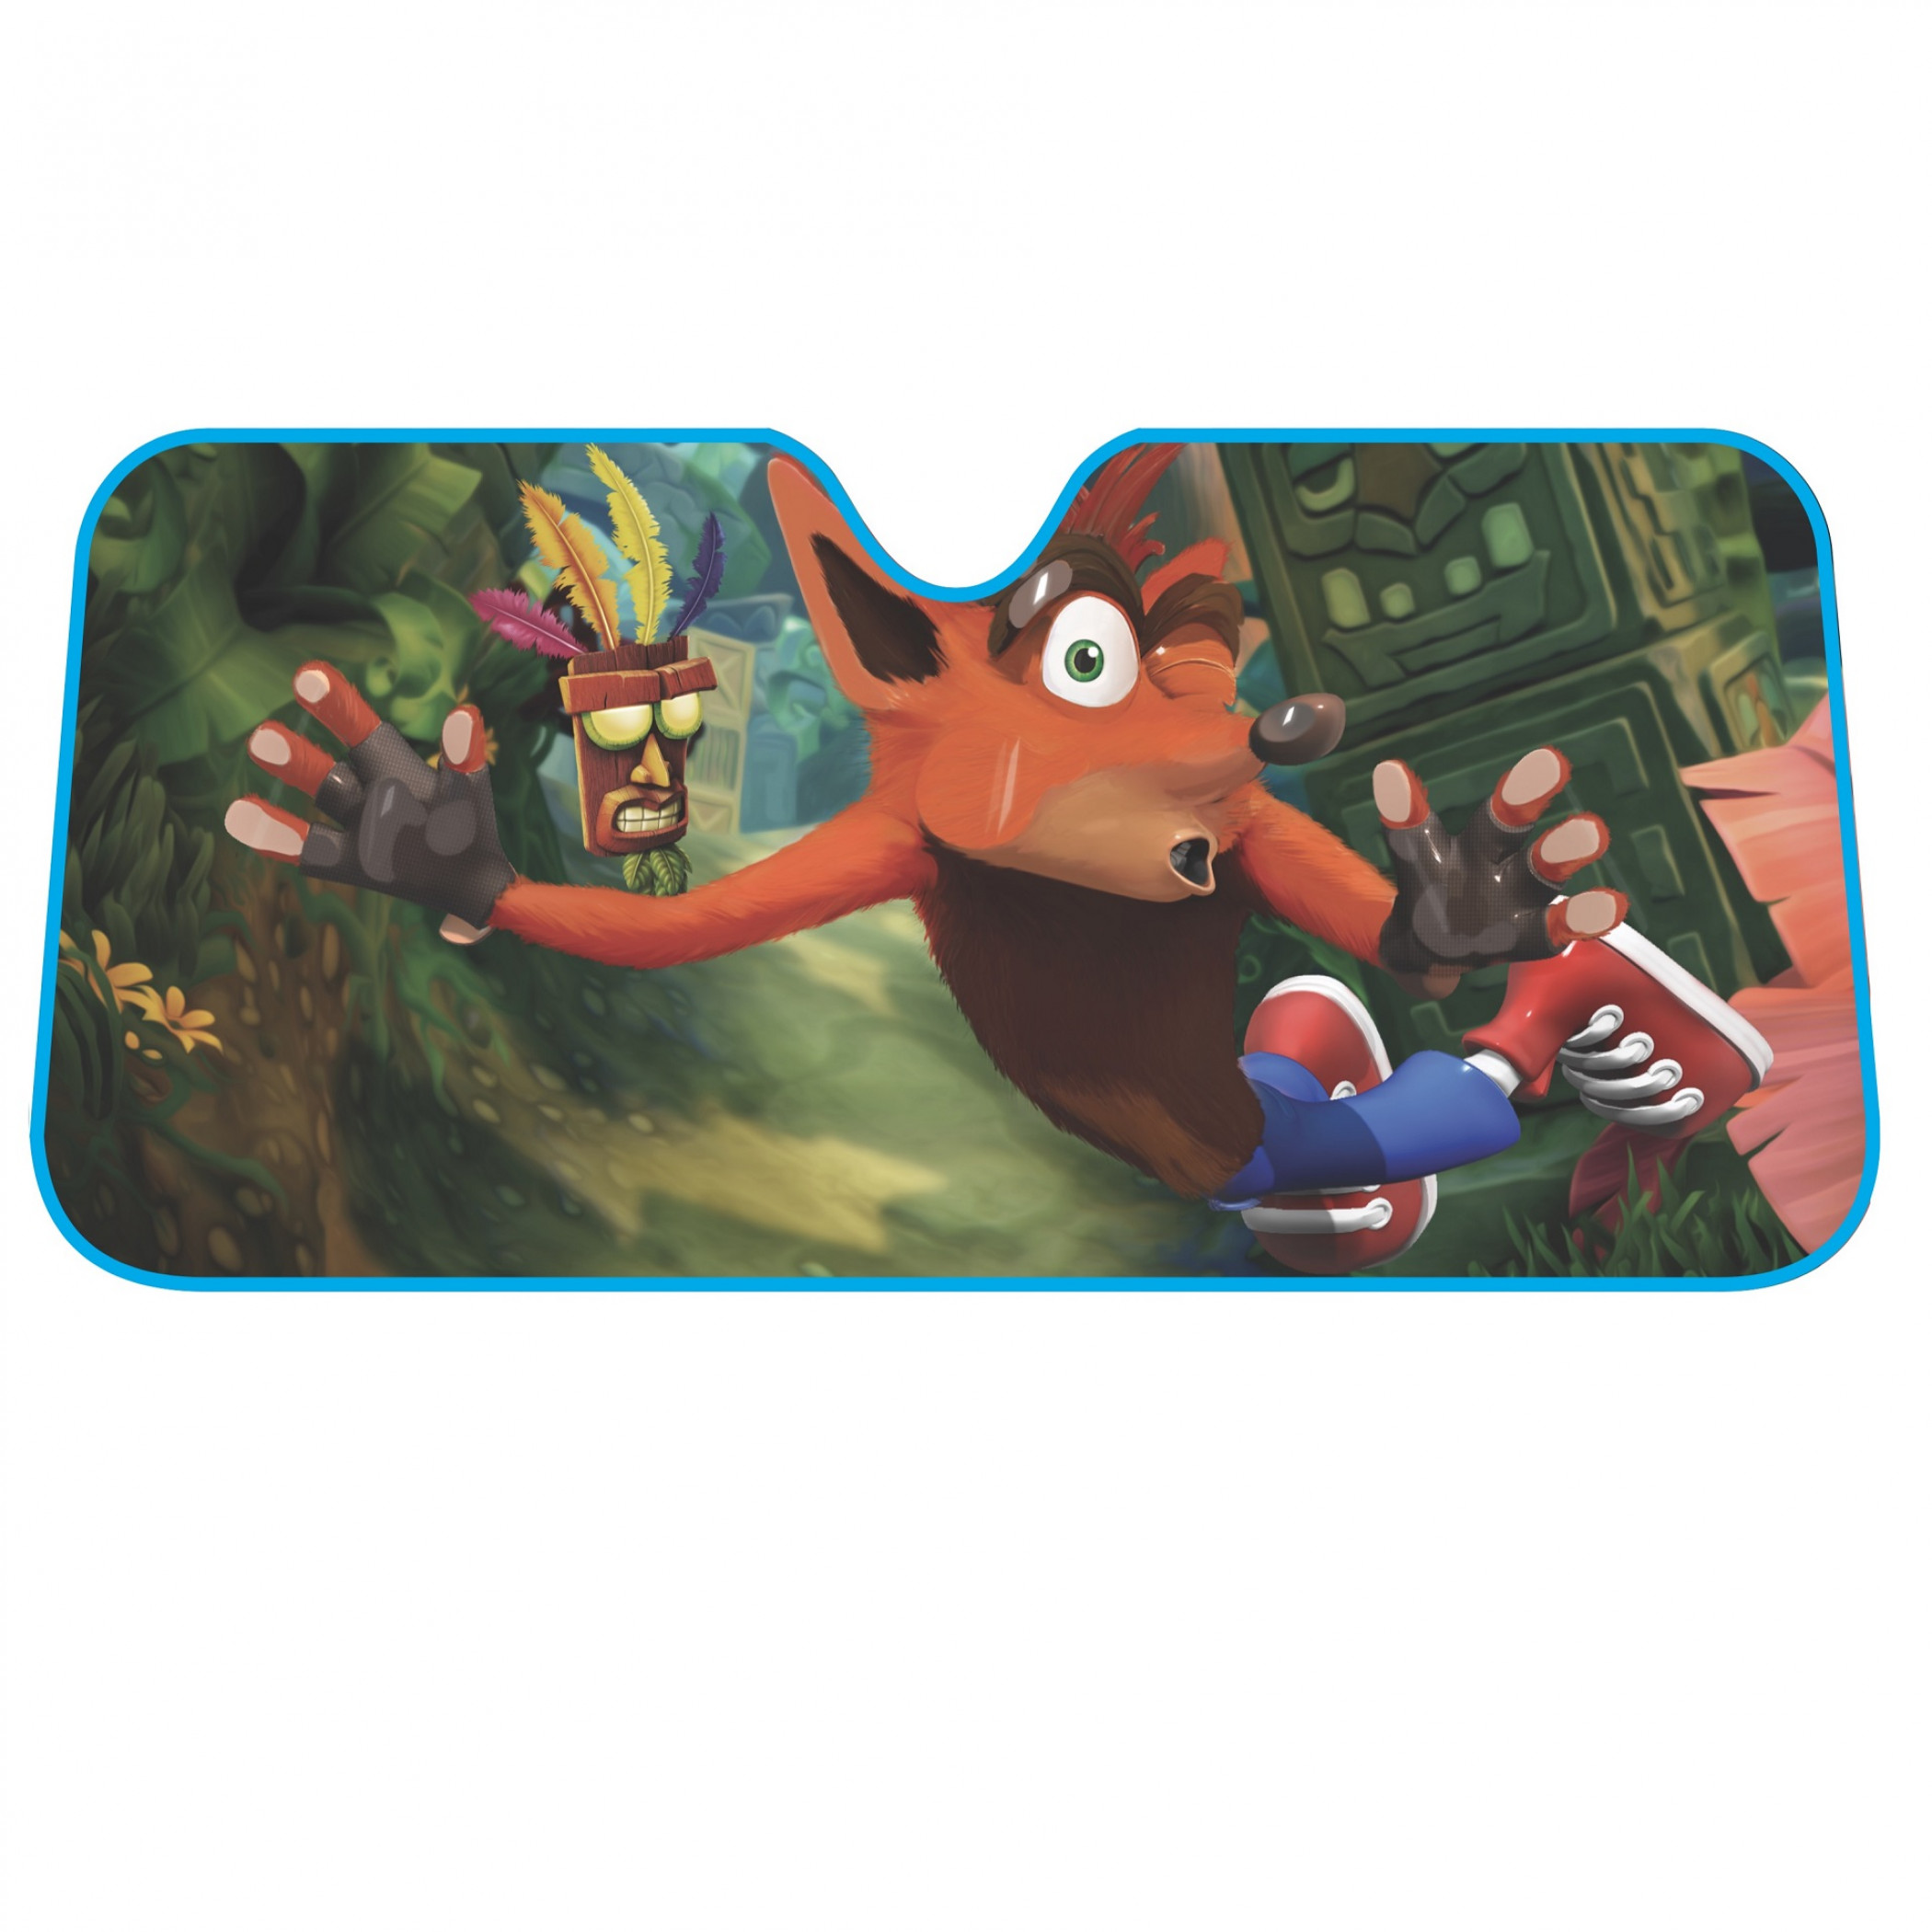 Crash Bandicoot Car Shade